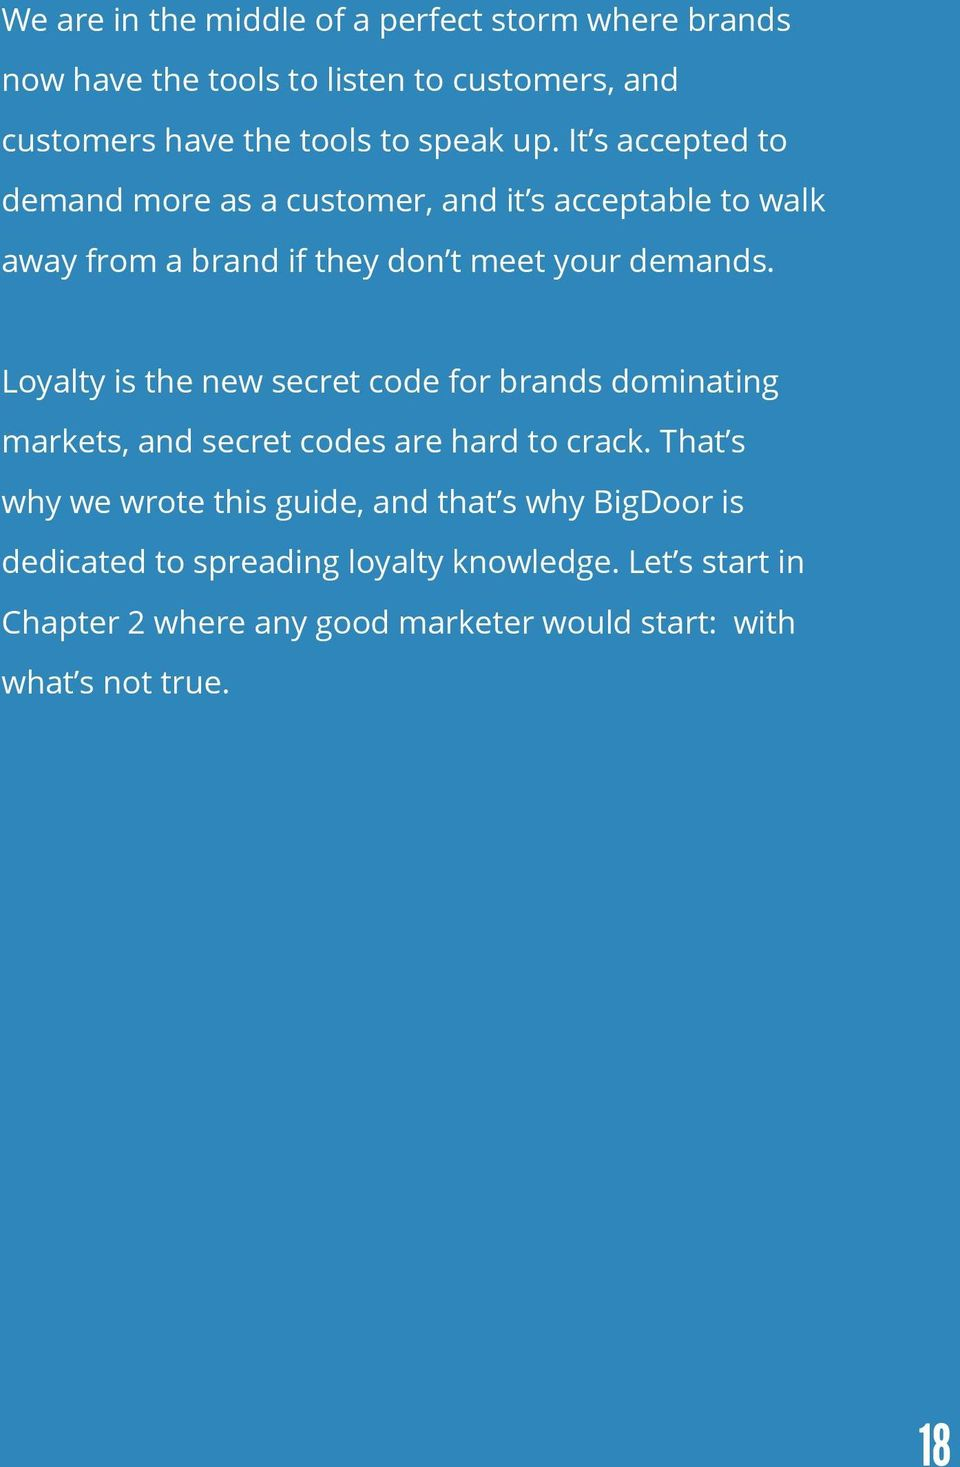 Loyalty is the new secret code for brands dominating markets, and secret codes are hard to crack.